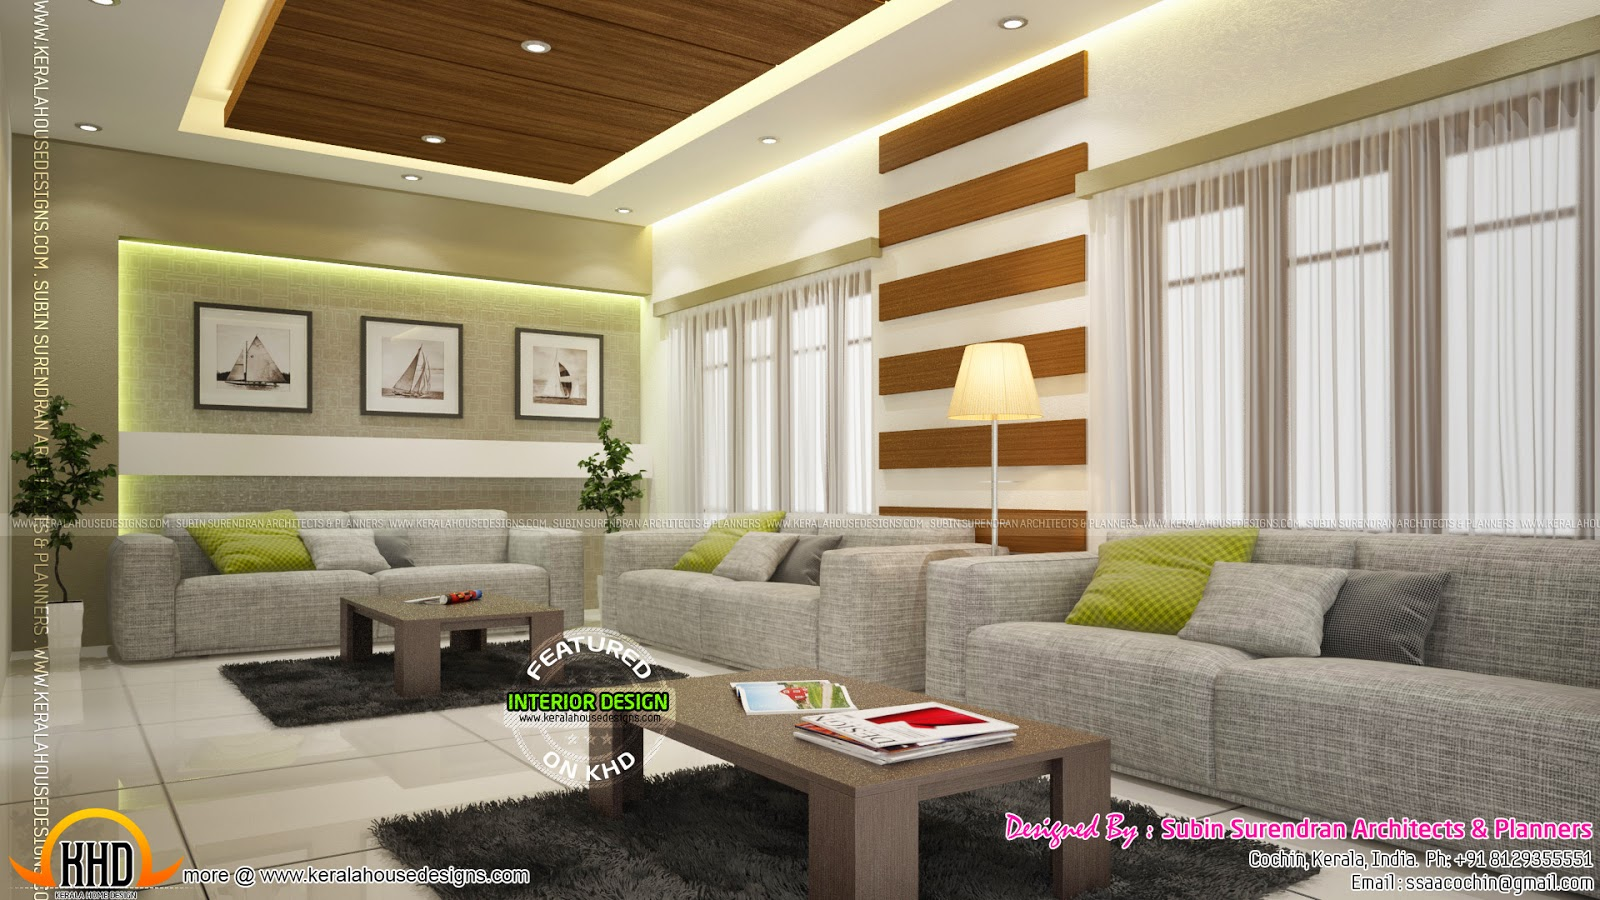 Beautiful home interior designs kerala home design and floor plans - Beautiful rooms ...